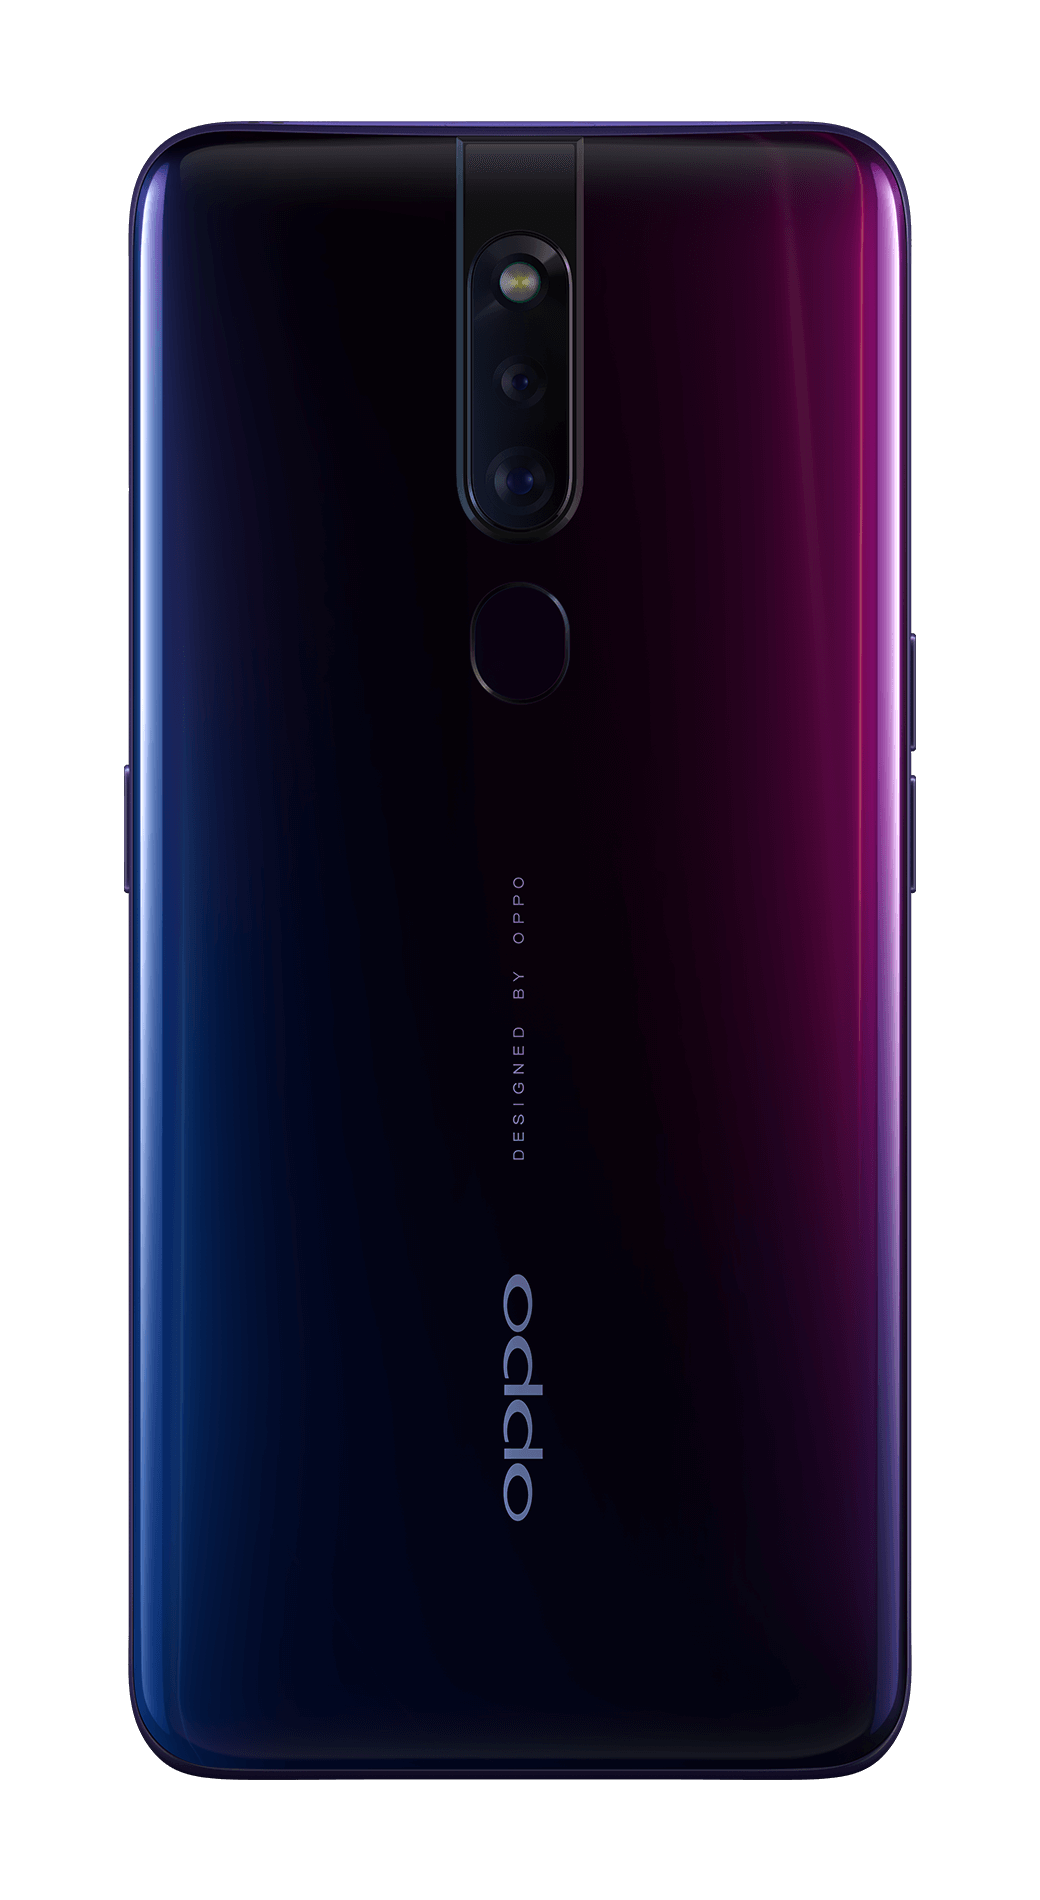 OPPO F11 Pro - camera with professional portrait settings